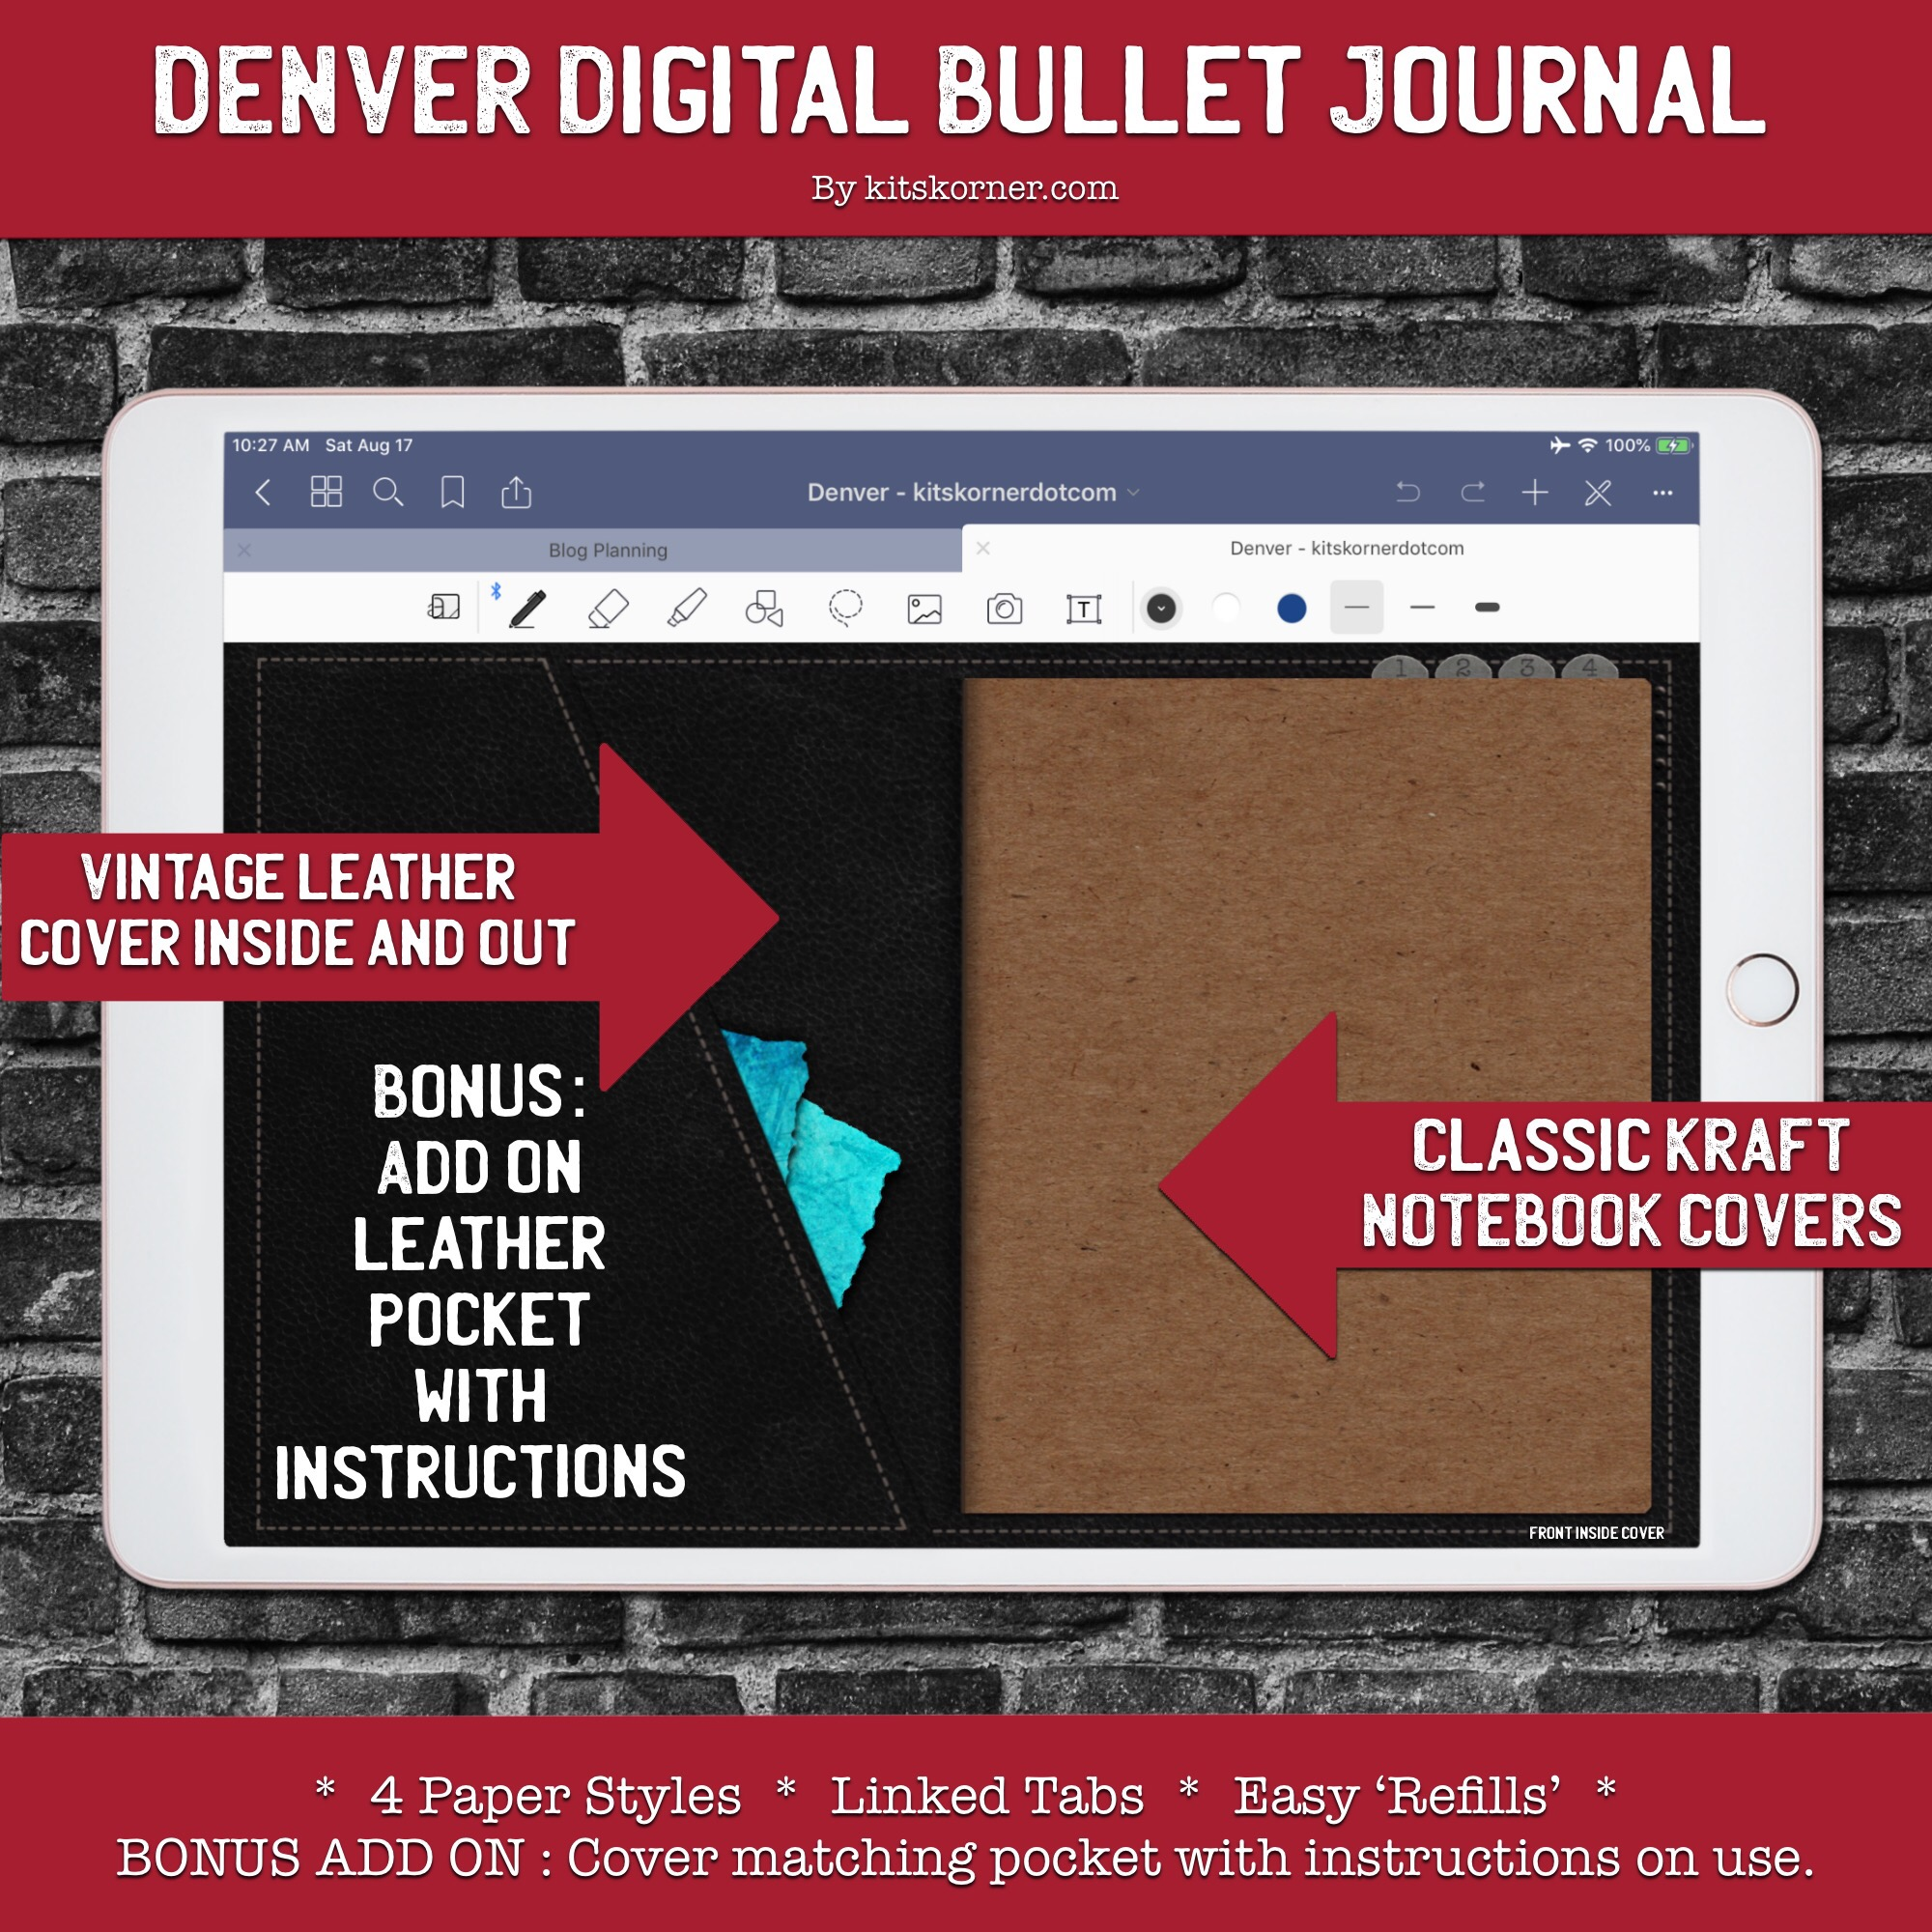 Denver Digital Bullet Journal